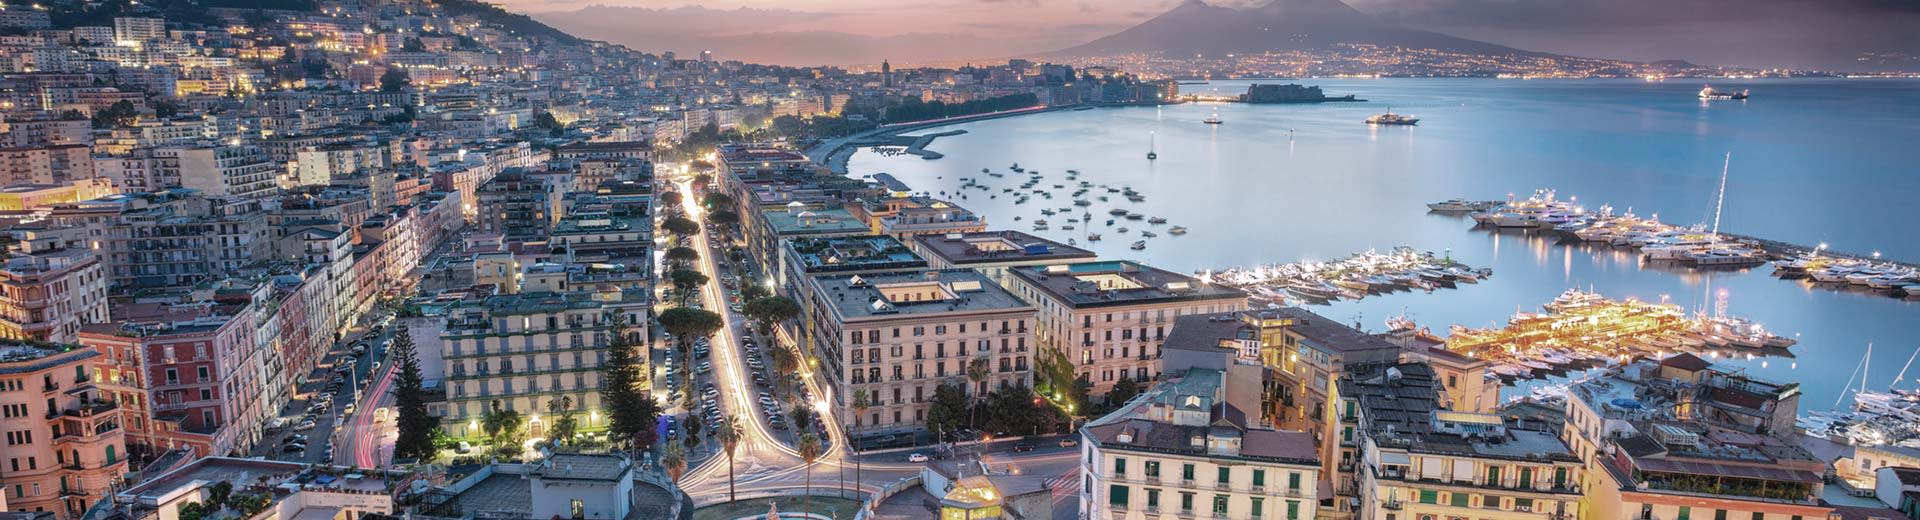 The beautiful city of Naples stretches across the coast at dusk